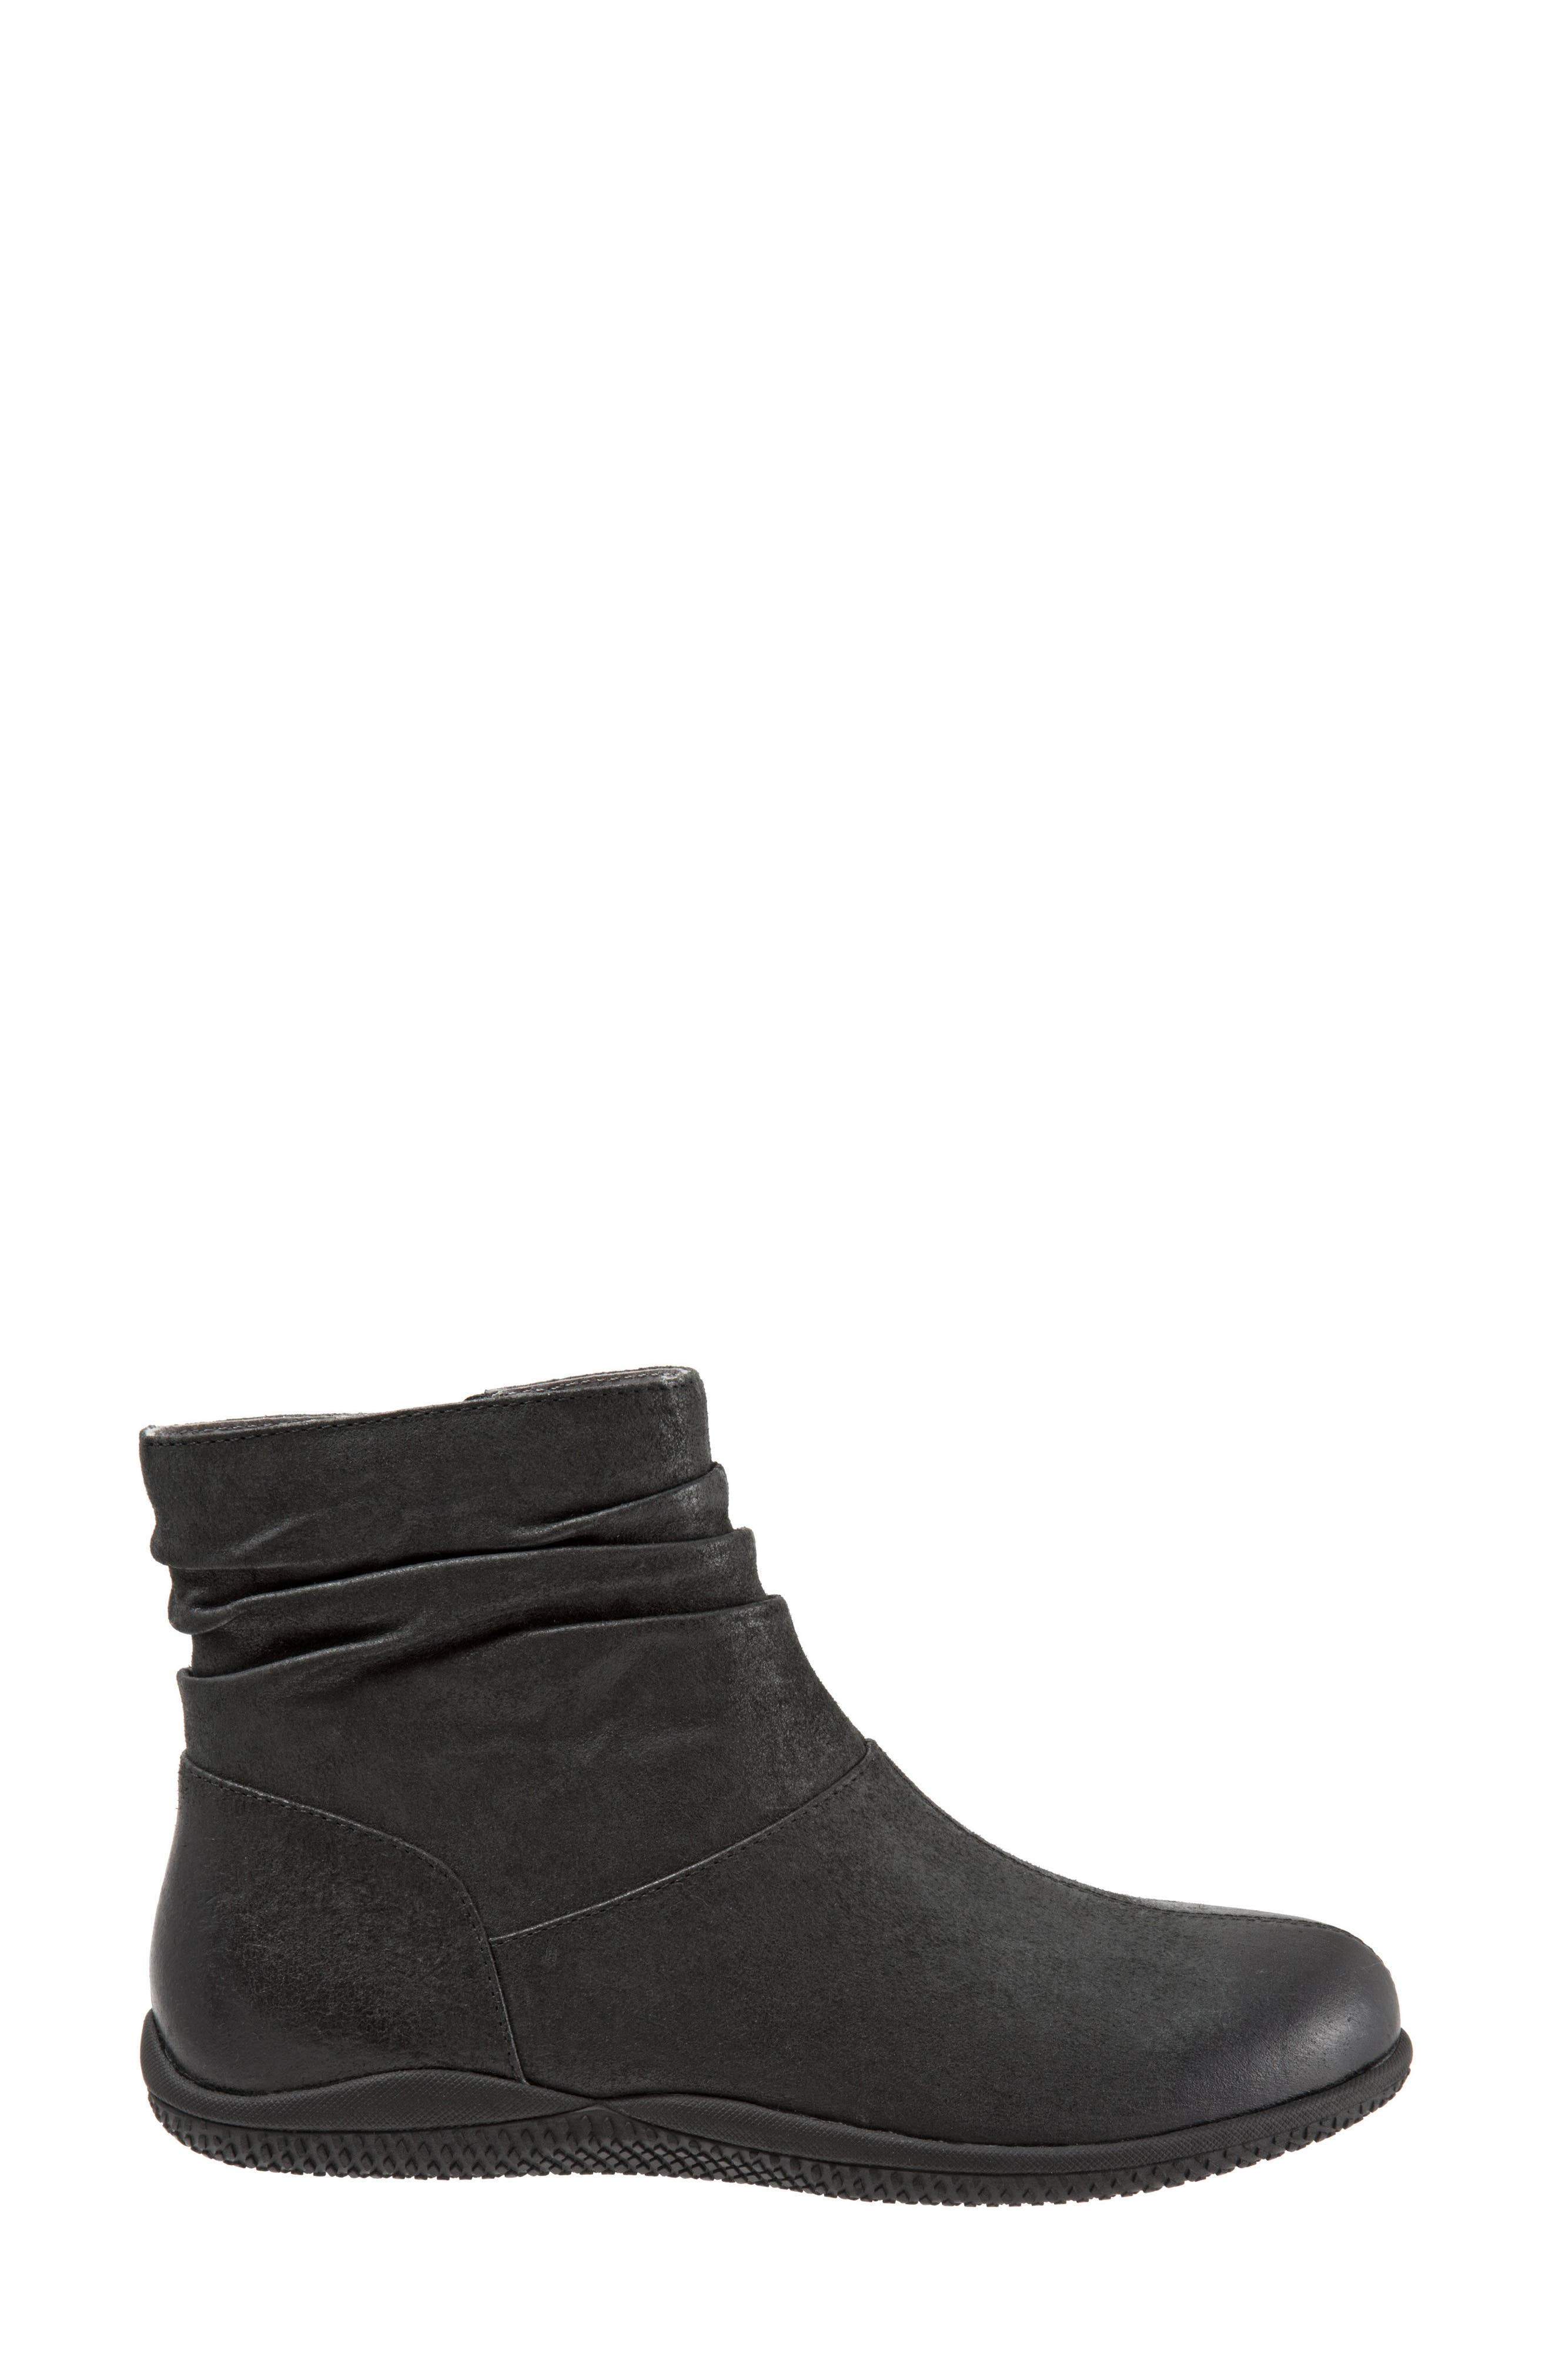 'Hanover' Leather Boot,                             Alternate thumbnail 3, color,                             006